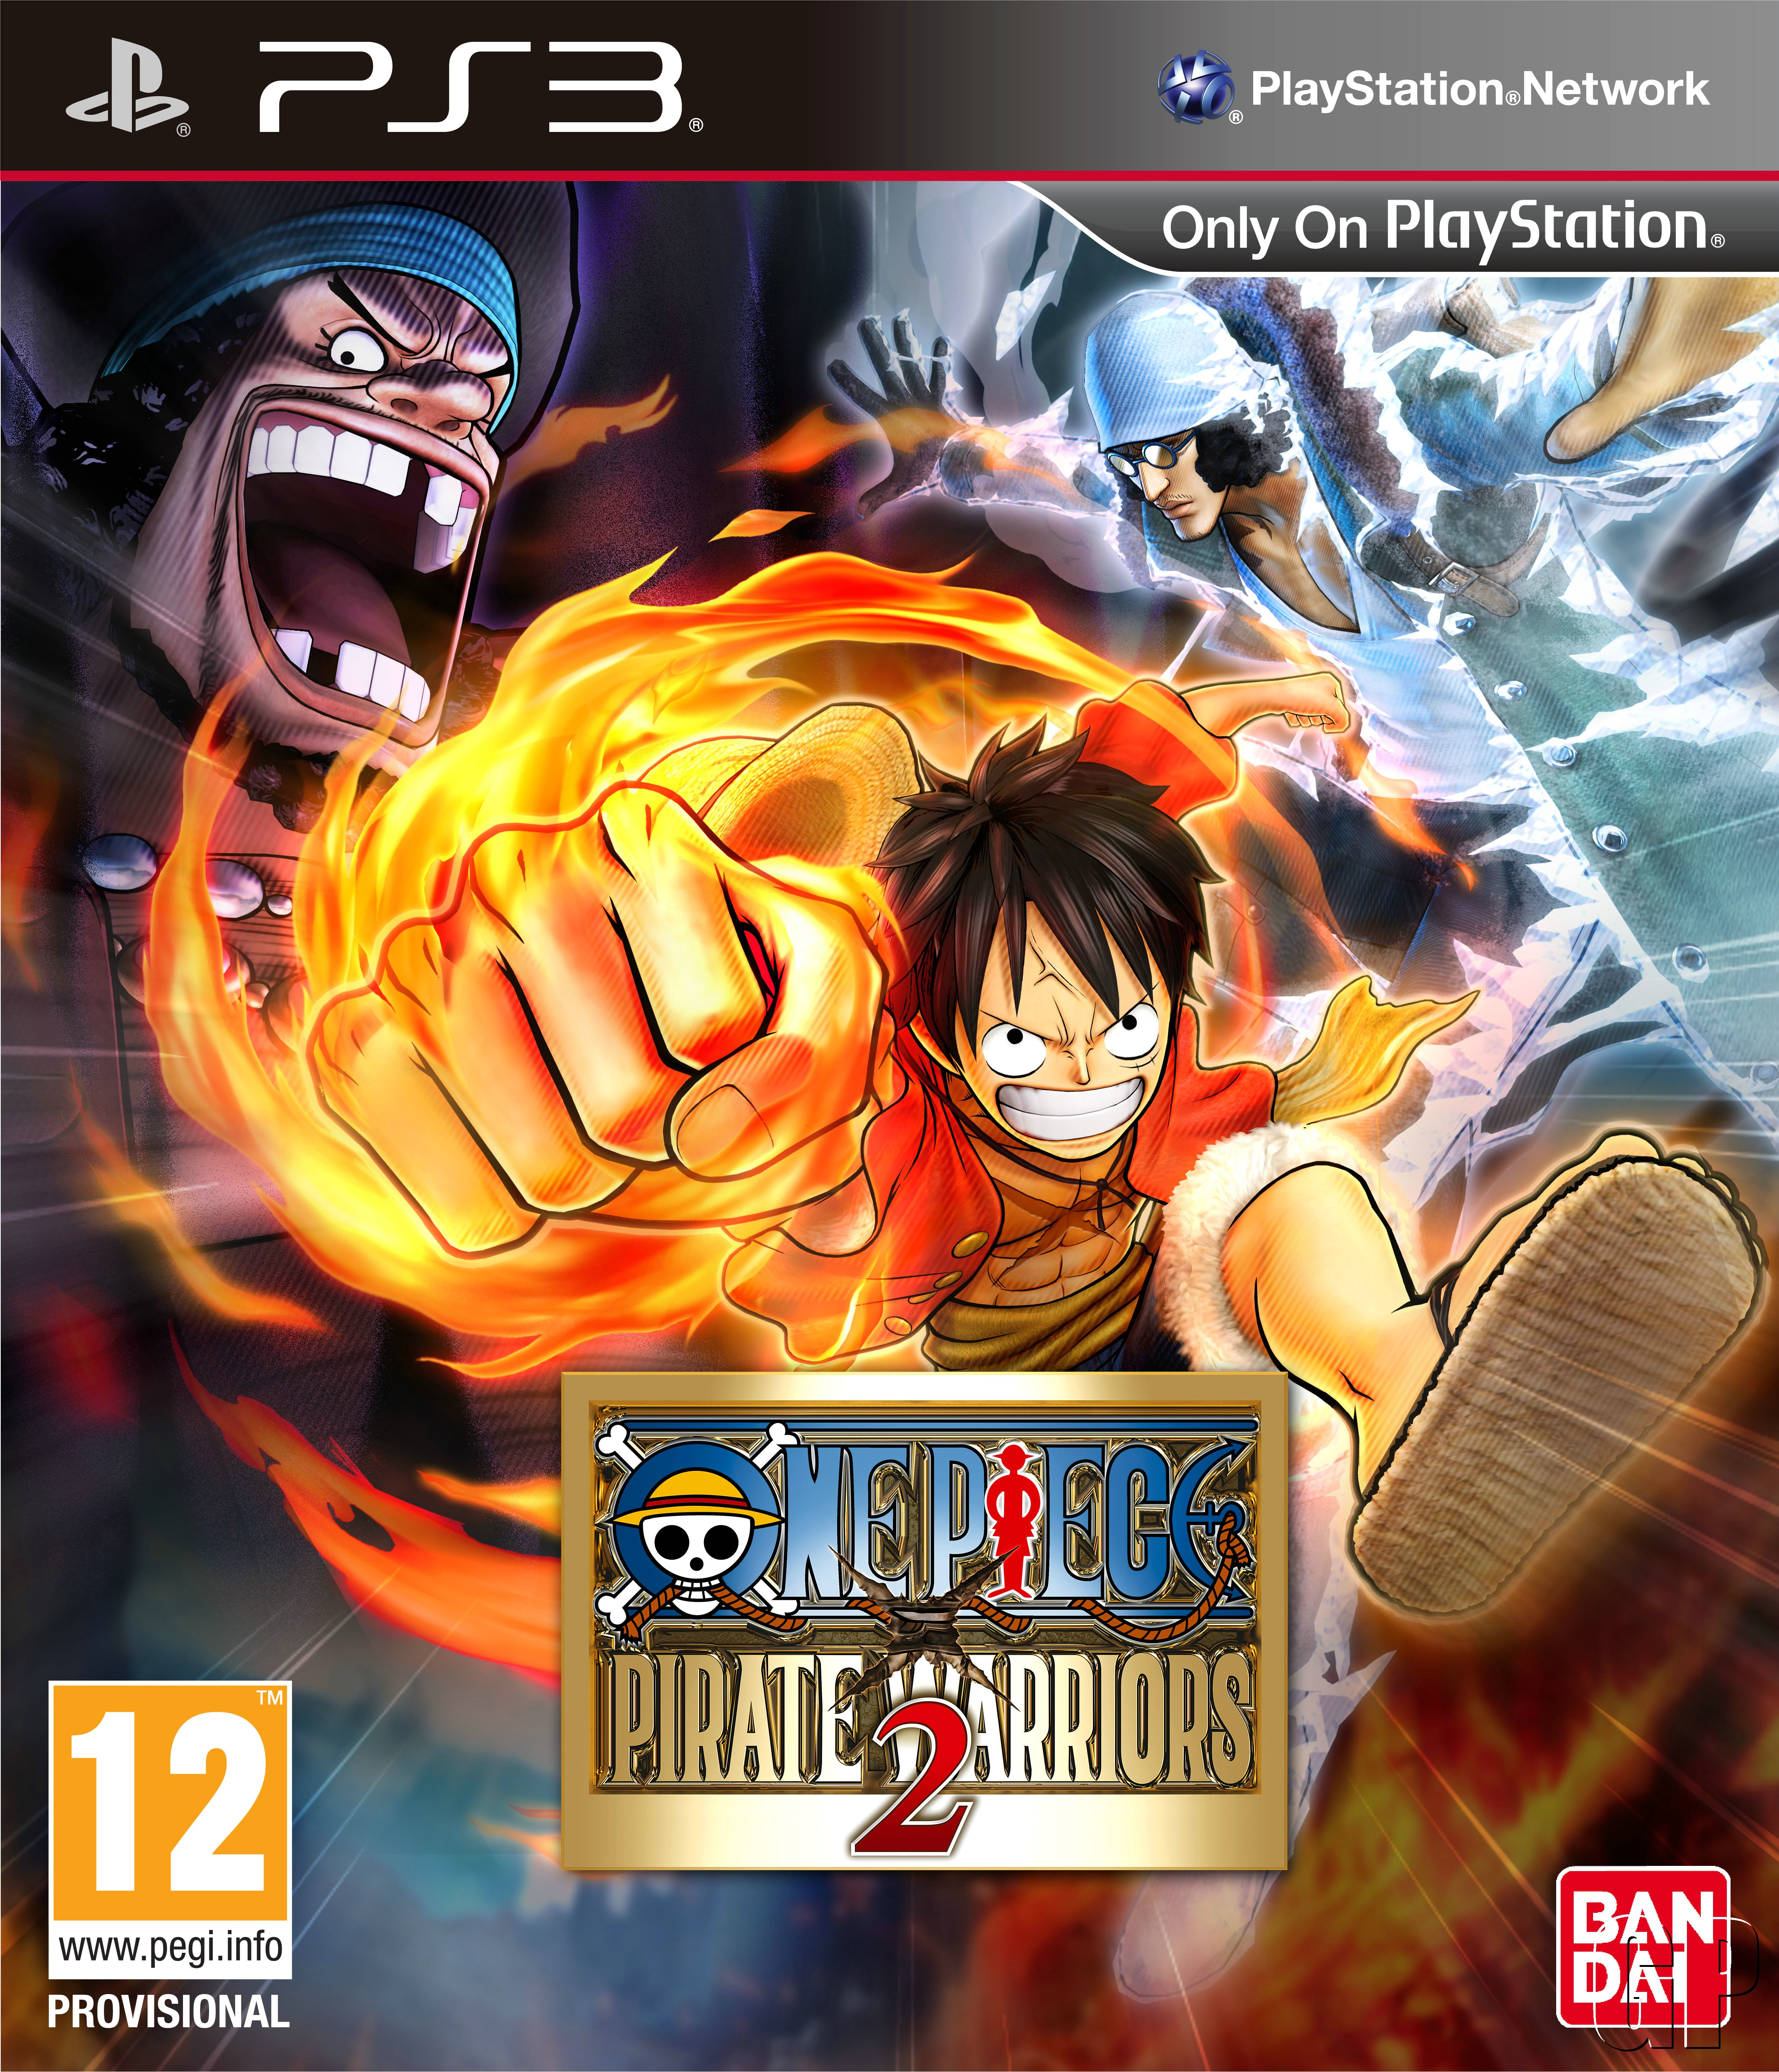 One Piece Pirate Warriors 2 A new packshot